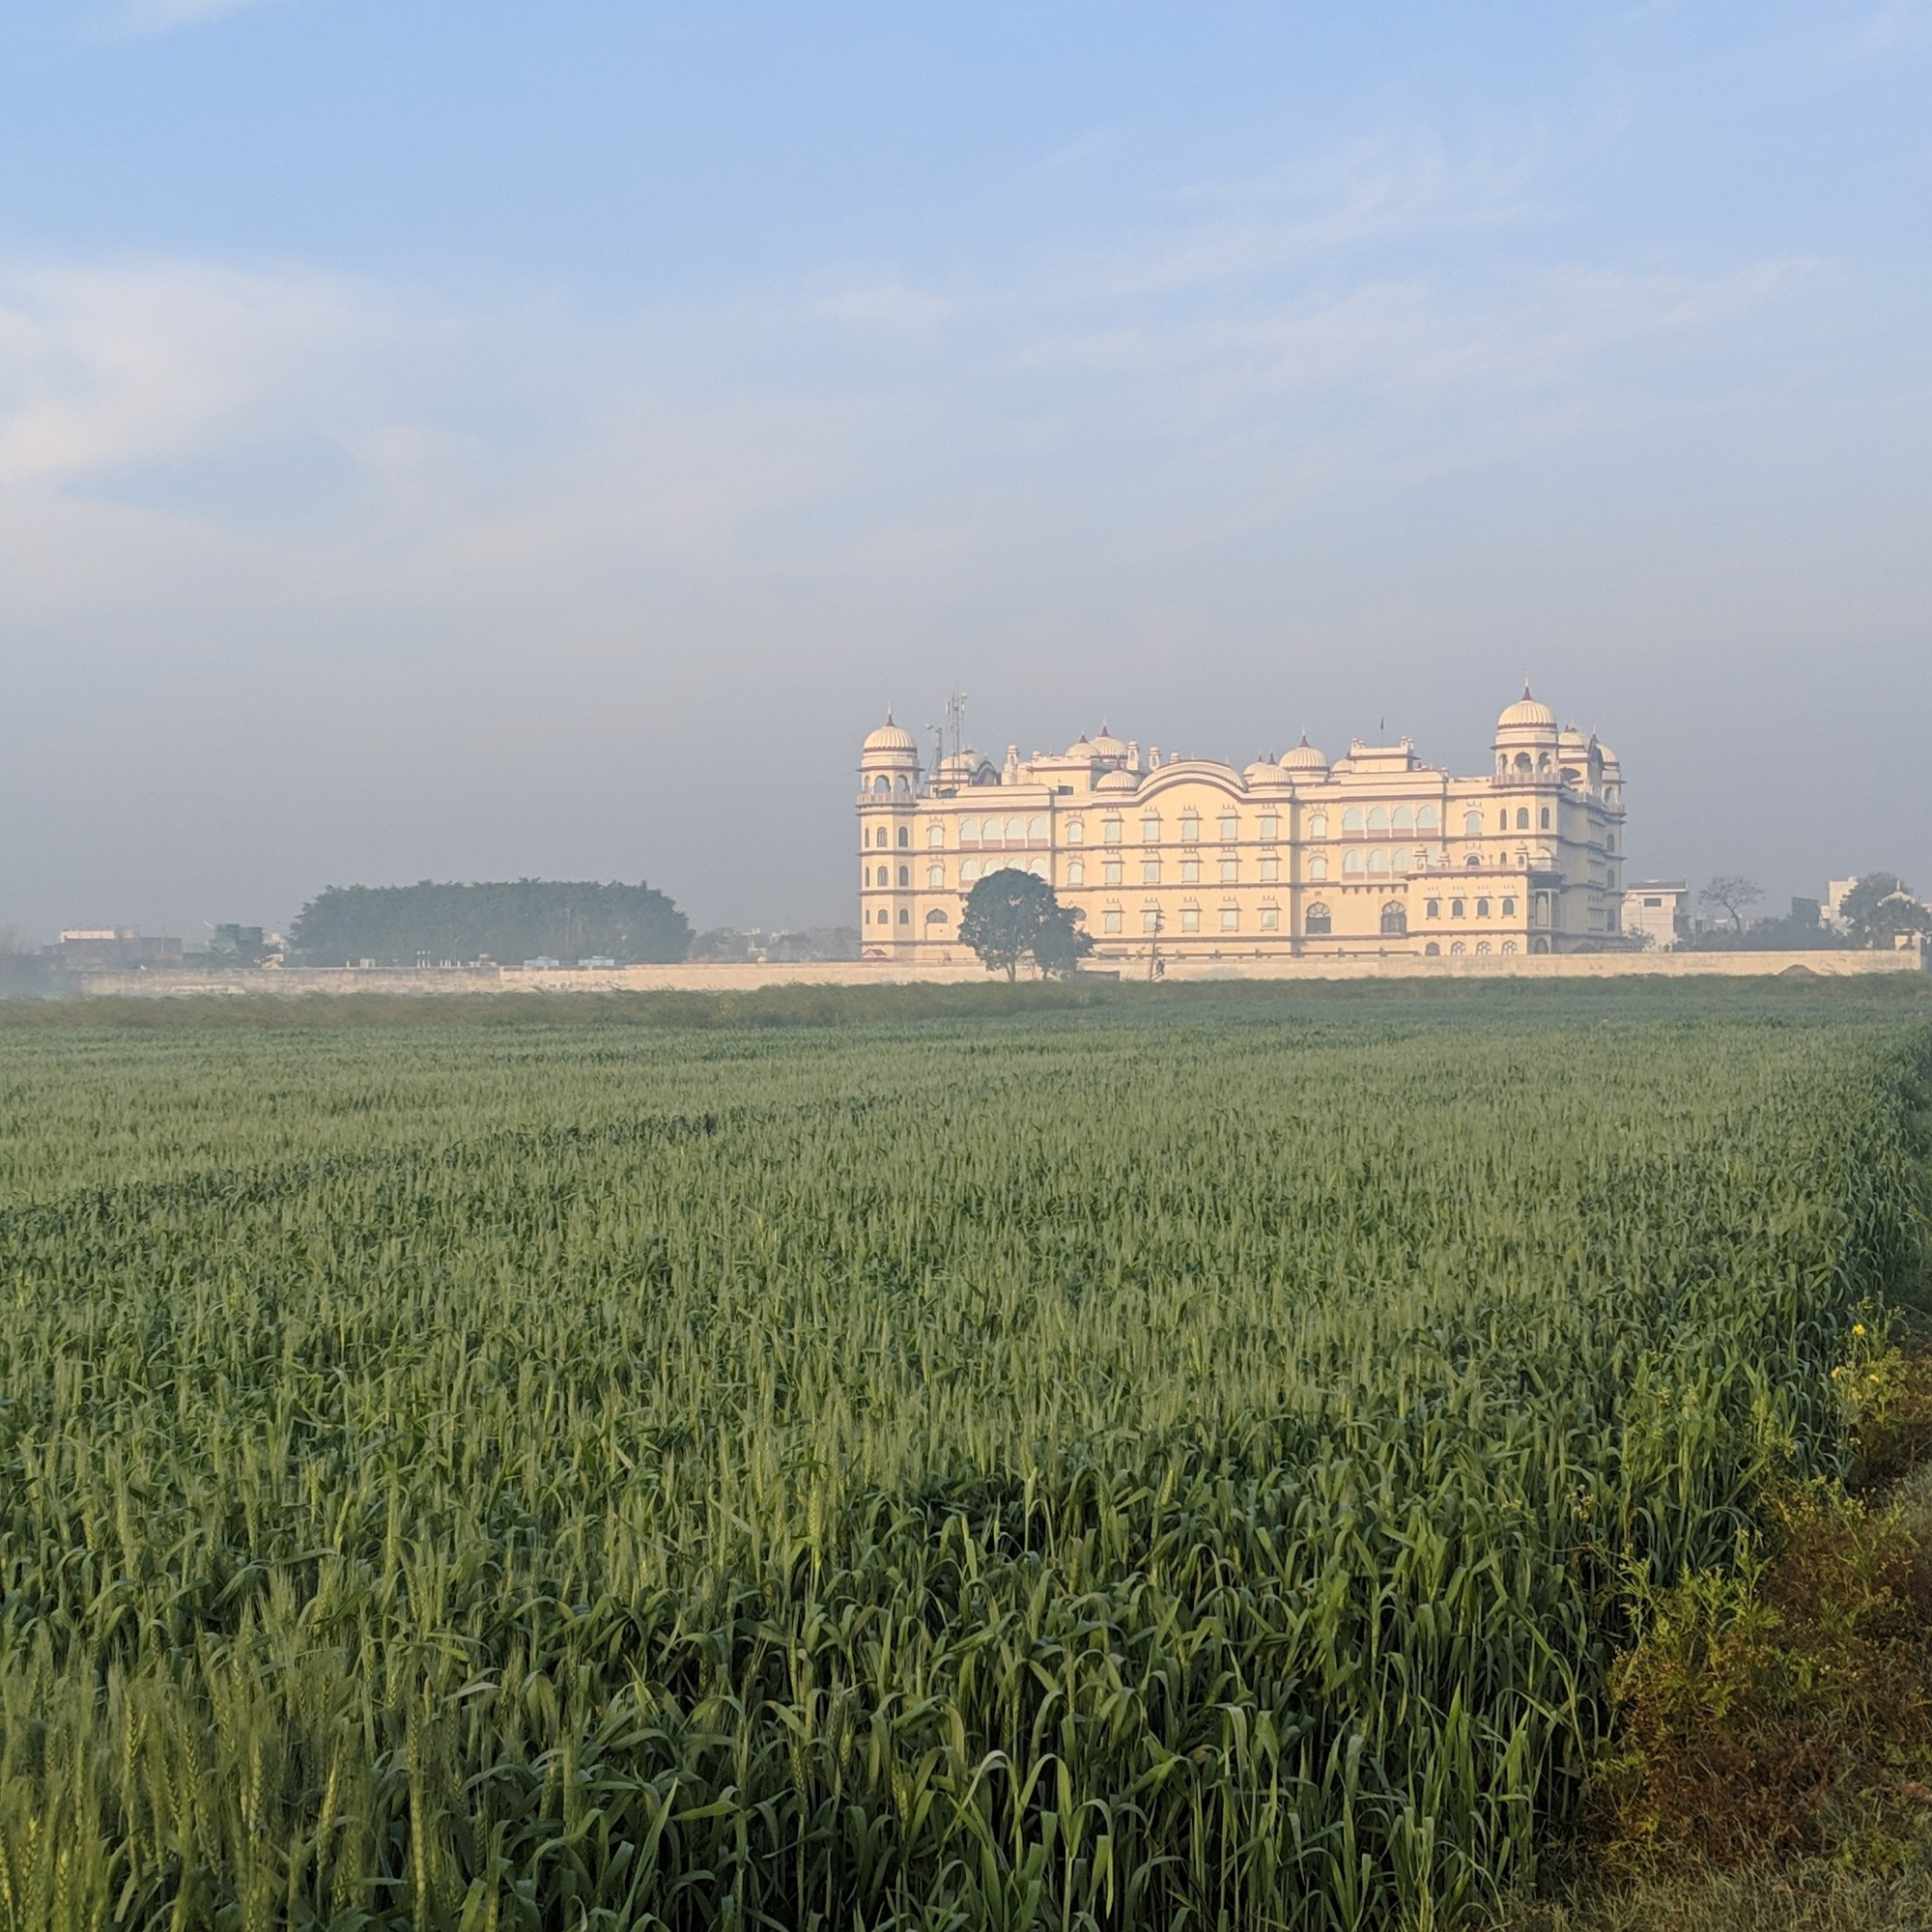 Noor mahal view from the farm